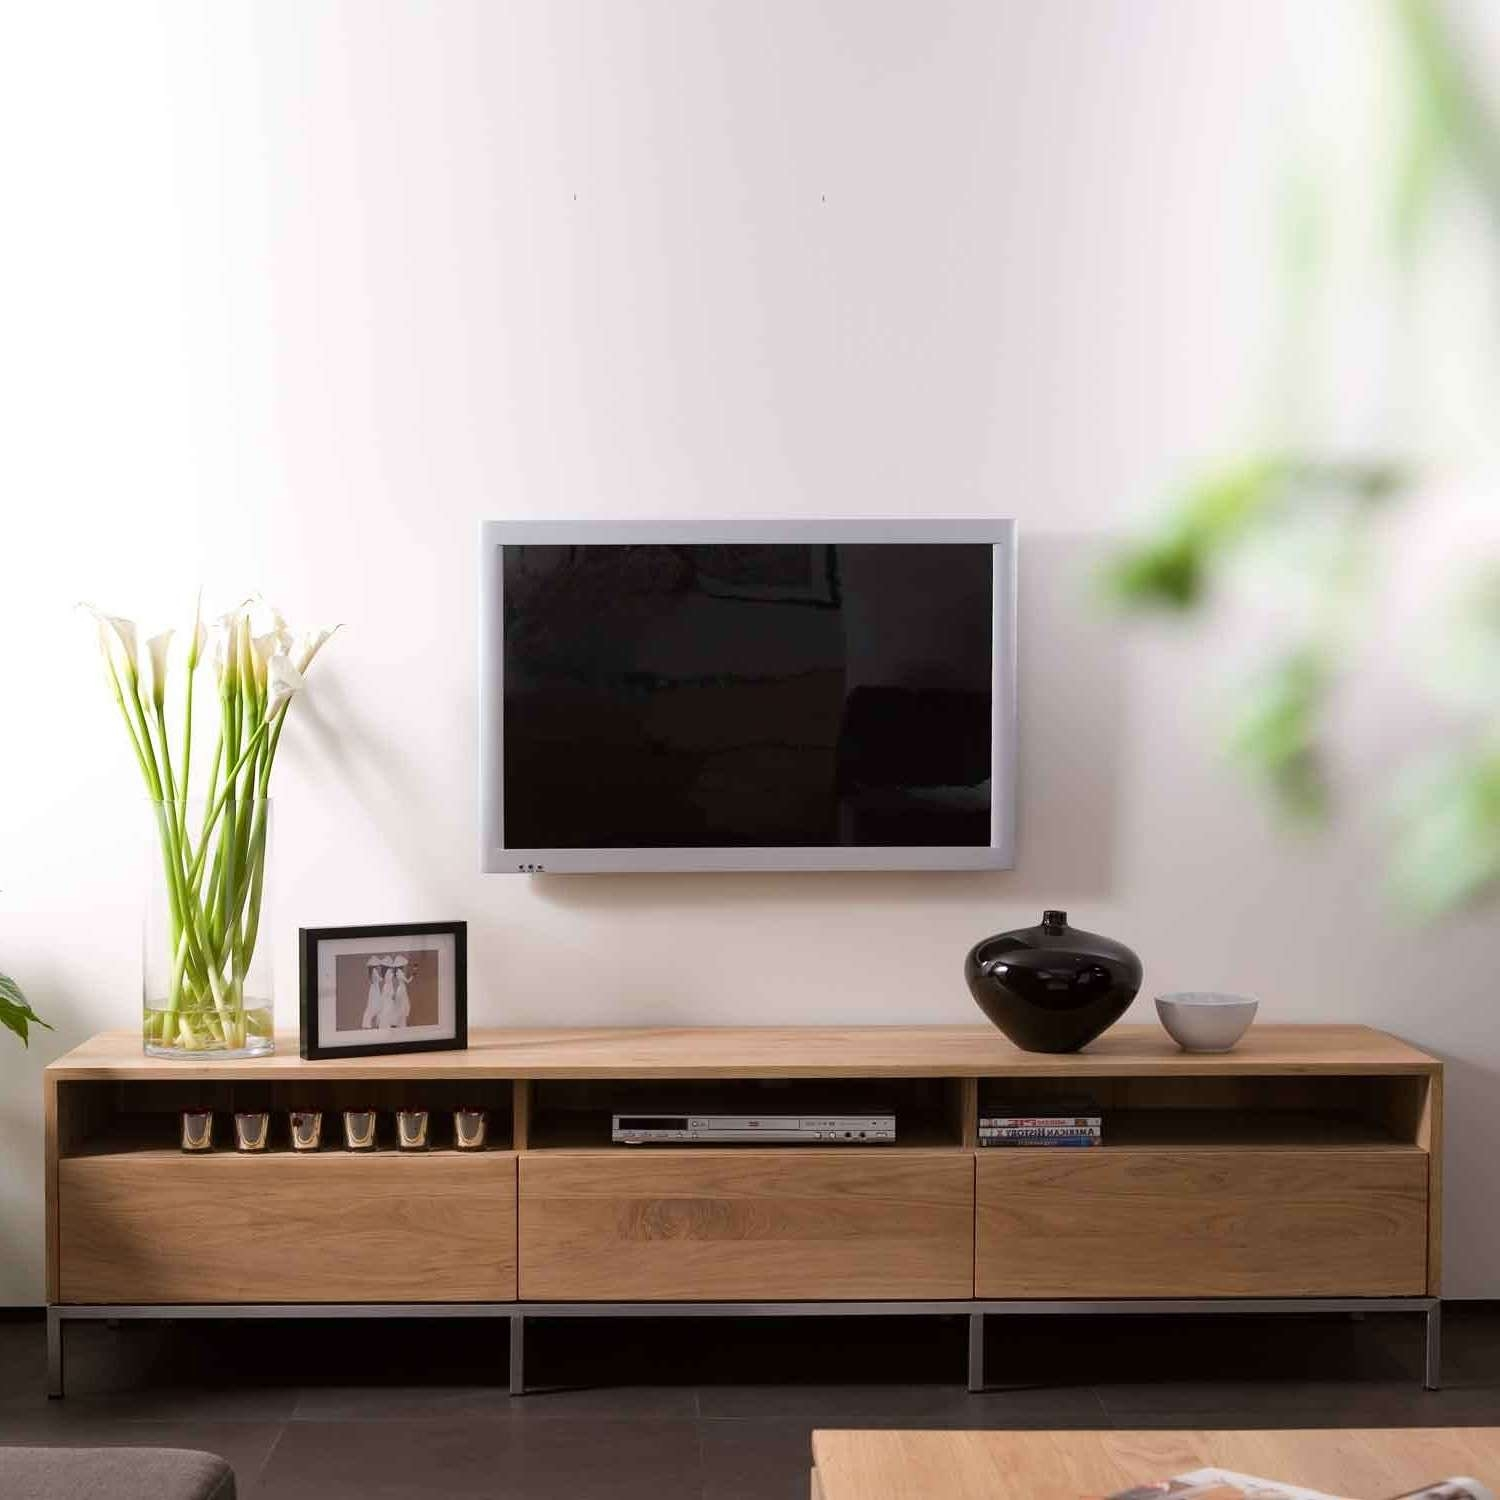 Ethnicraft Ligna Oak Tv Units | Solid Wood Furniture Pertaining To Contemporary Oak Tv Stands (View 3 of 15)